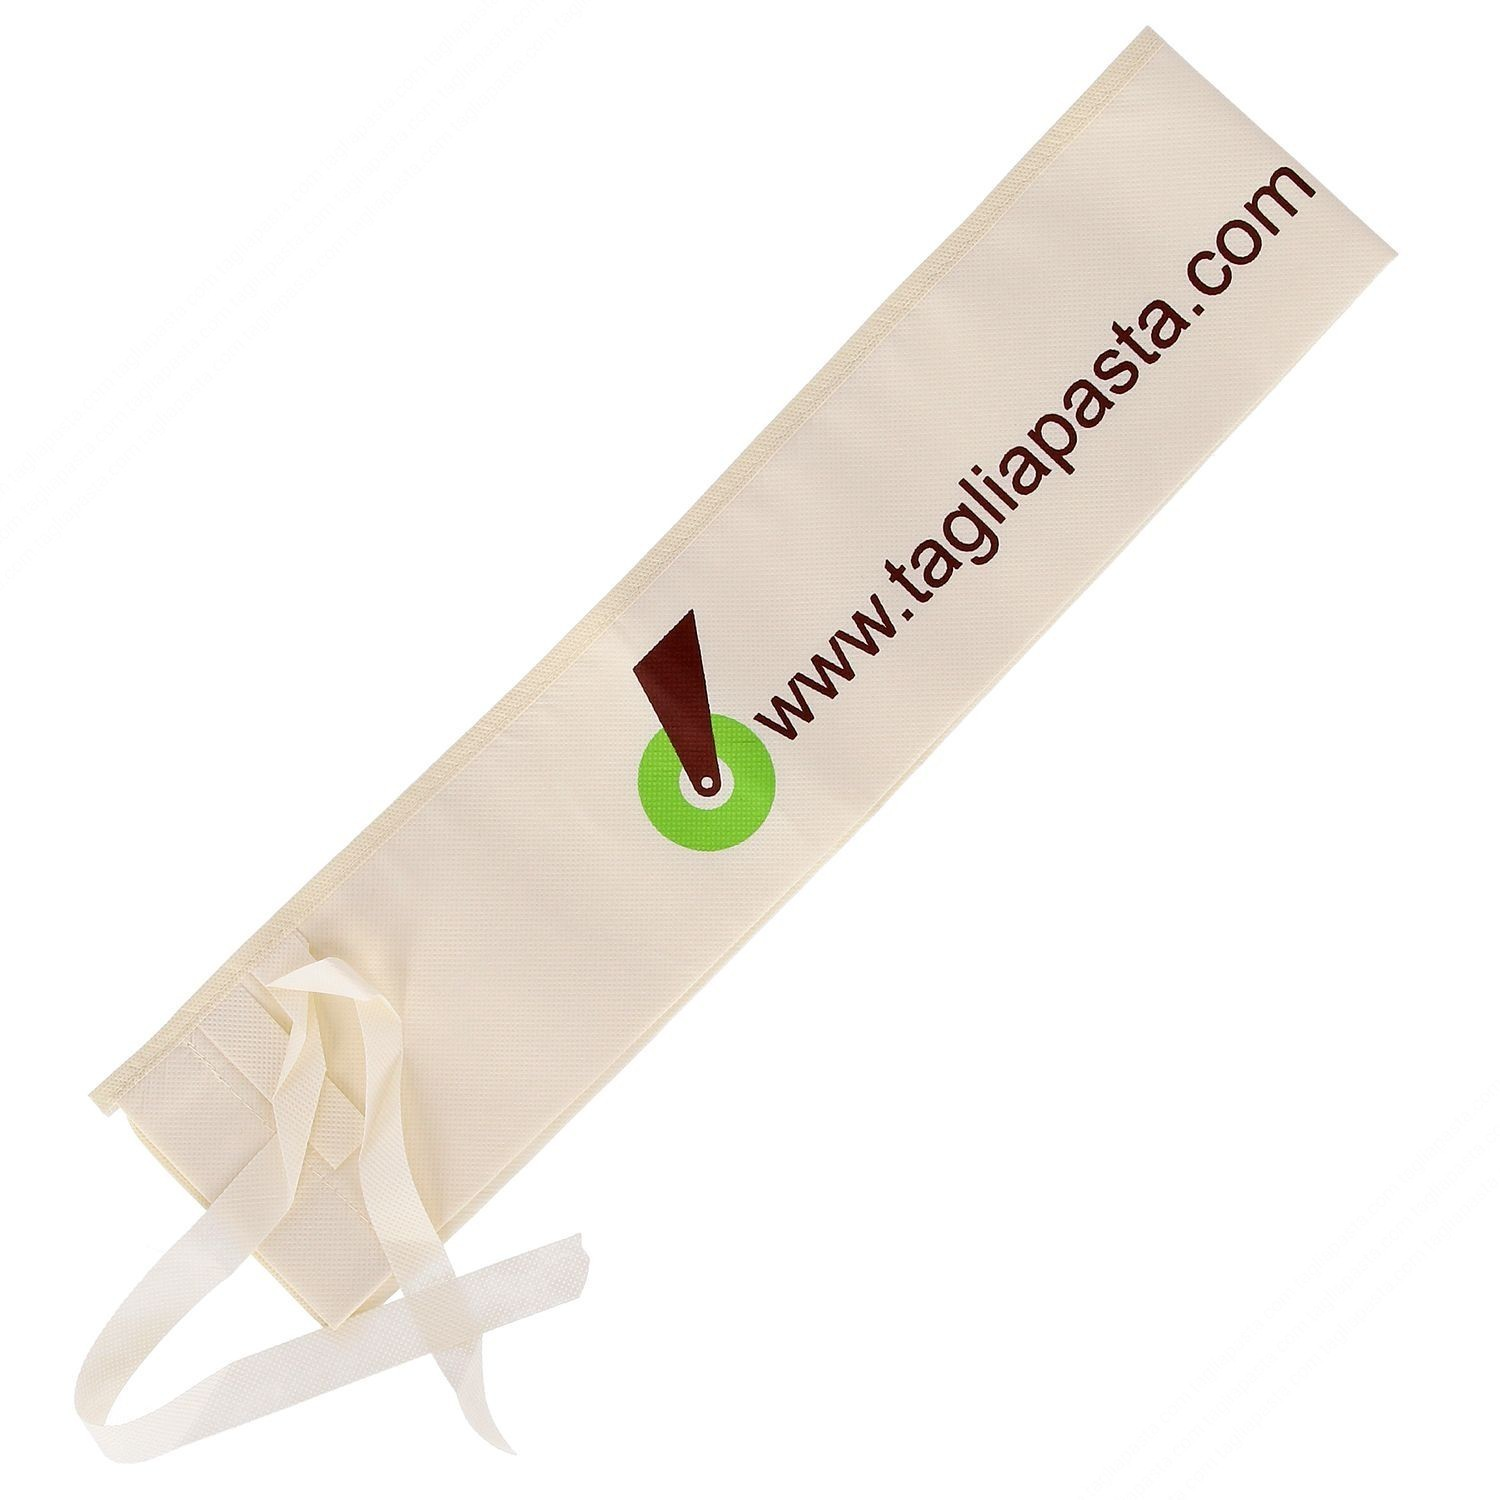 Washable fabric case for rolling pins up to 120 cm long